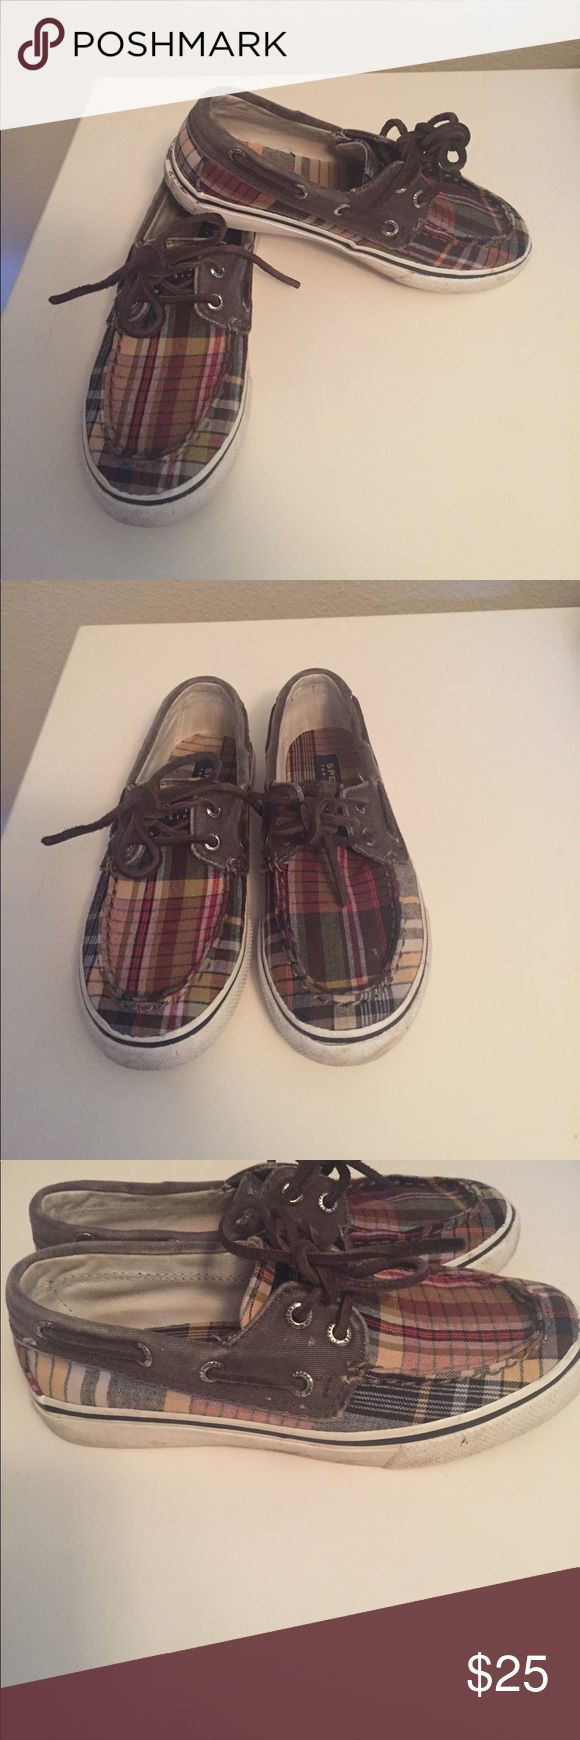 Sperrys size 13 Darling pair of plaid sperrys. Worn twice size 13. See pics for exact condition. From clean pet and smoke free home.  Due to the exorbitantly high cost of shipping packages in excess of 5 lbs. I will not be selling or shipping bundles over 5 lbs.  Please ask prior to purchasing if you think your bundle may be over 5 lbs. Sperry Shoes